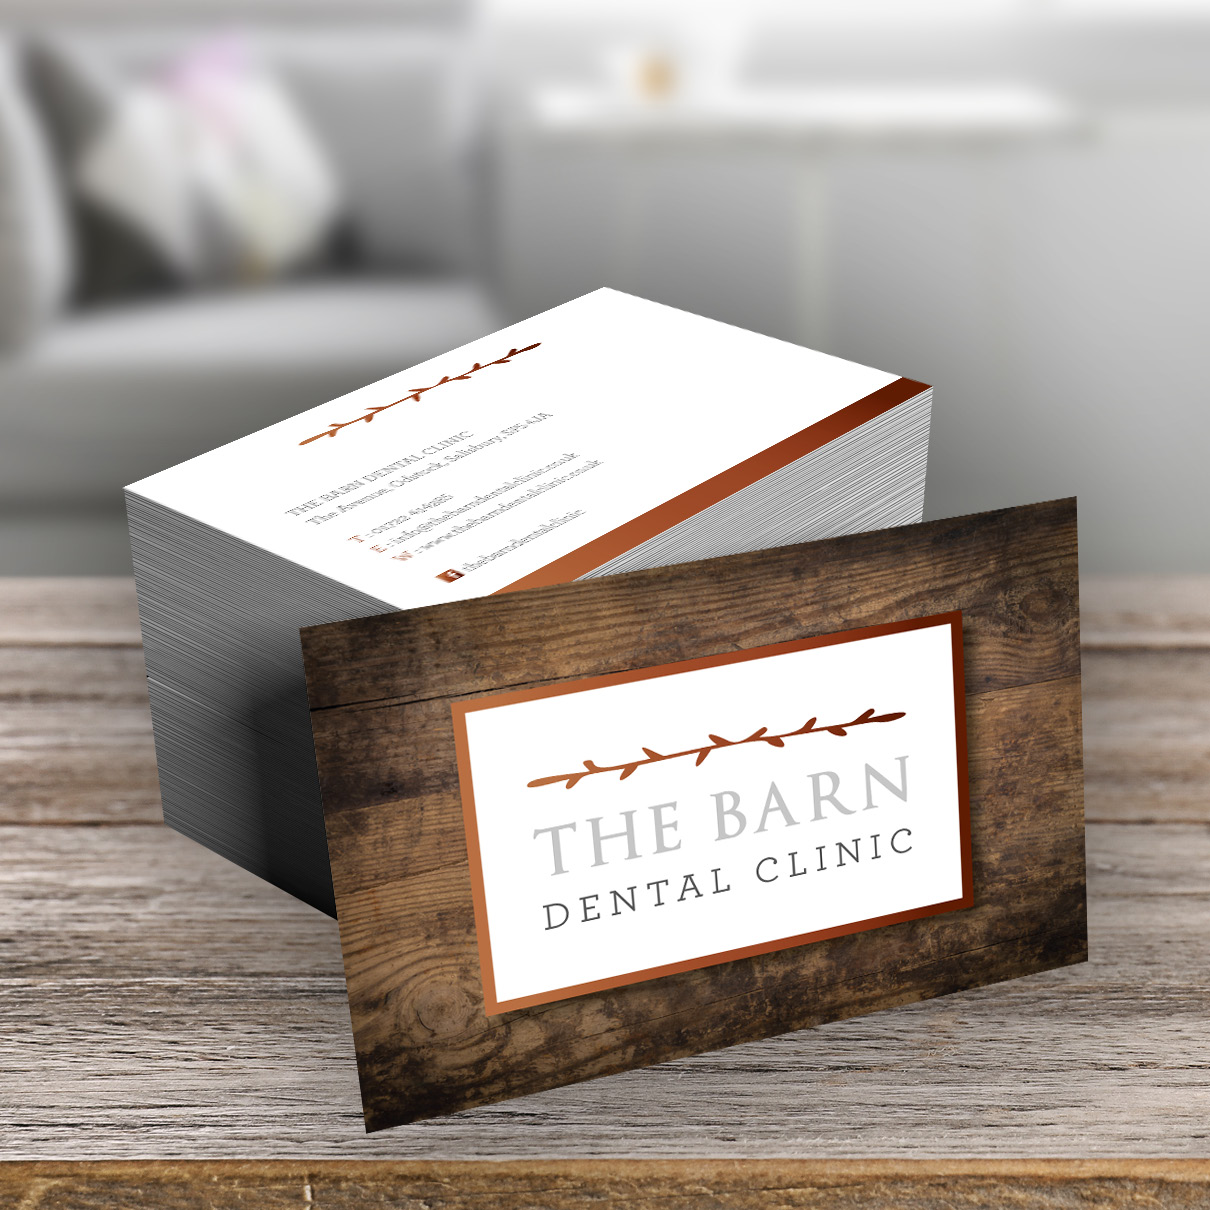 The-Barn-dental-clinic-BC